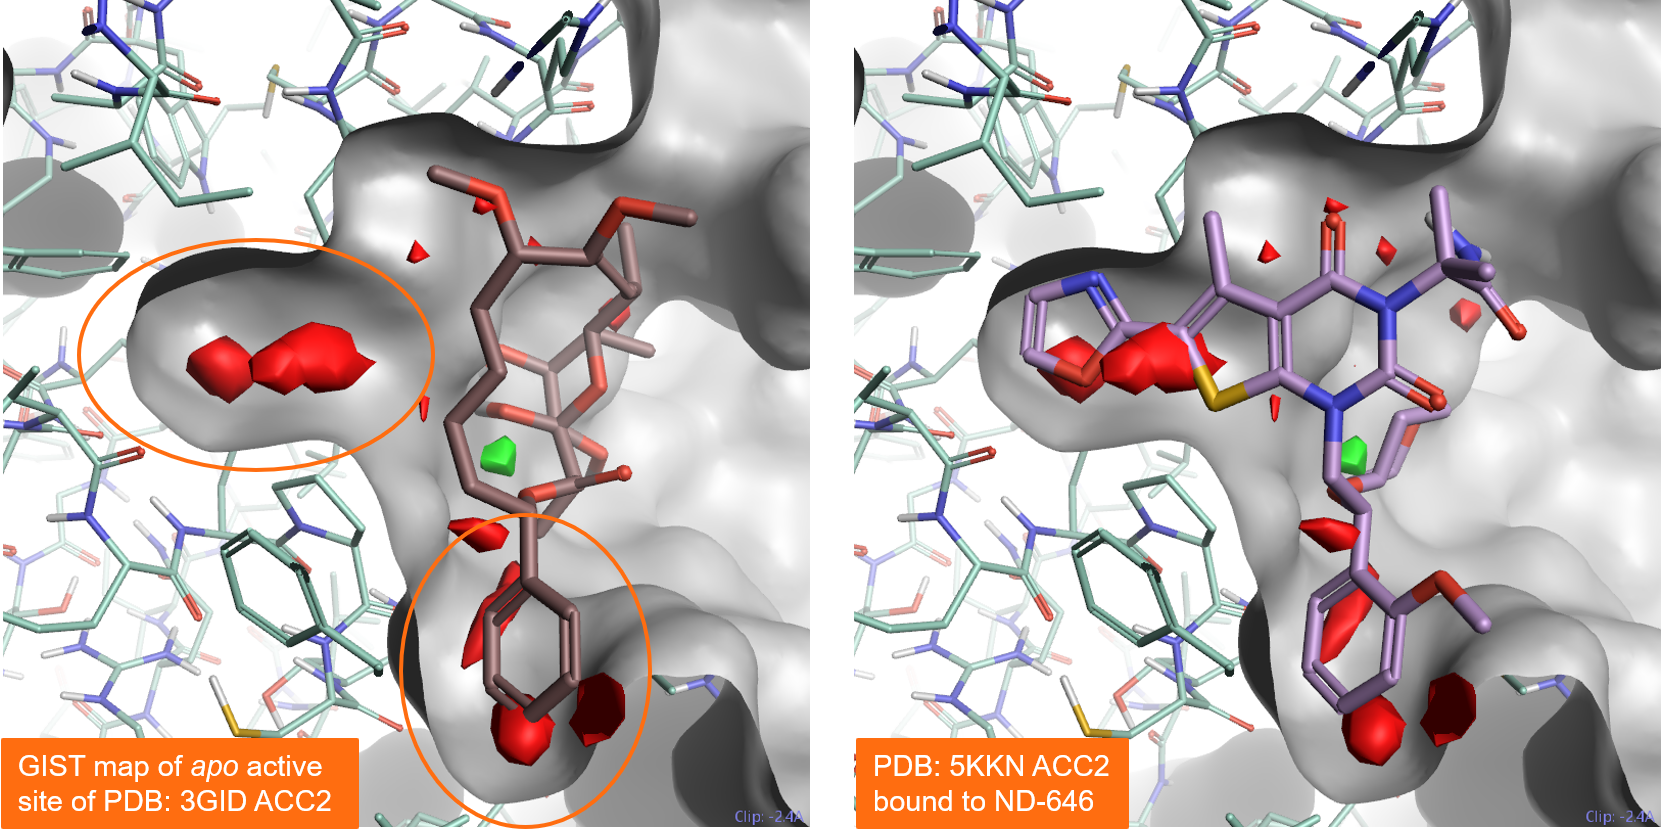 Figure 5. Results of a GIST analysis performed on the apo active site of Acetyl-CoA Carboxylase 2